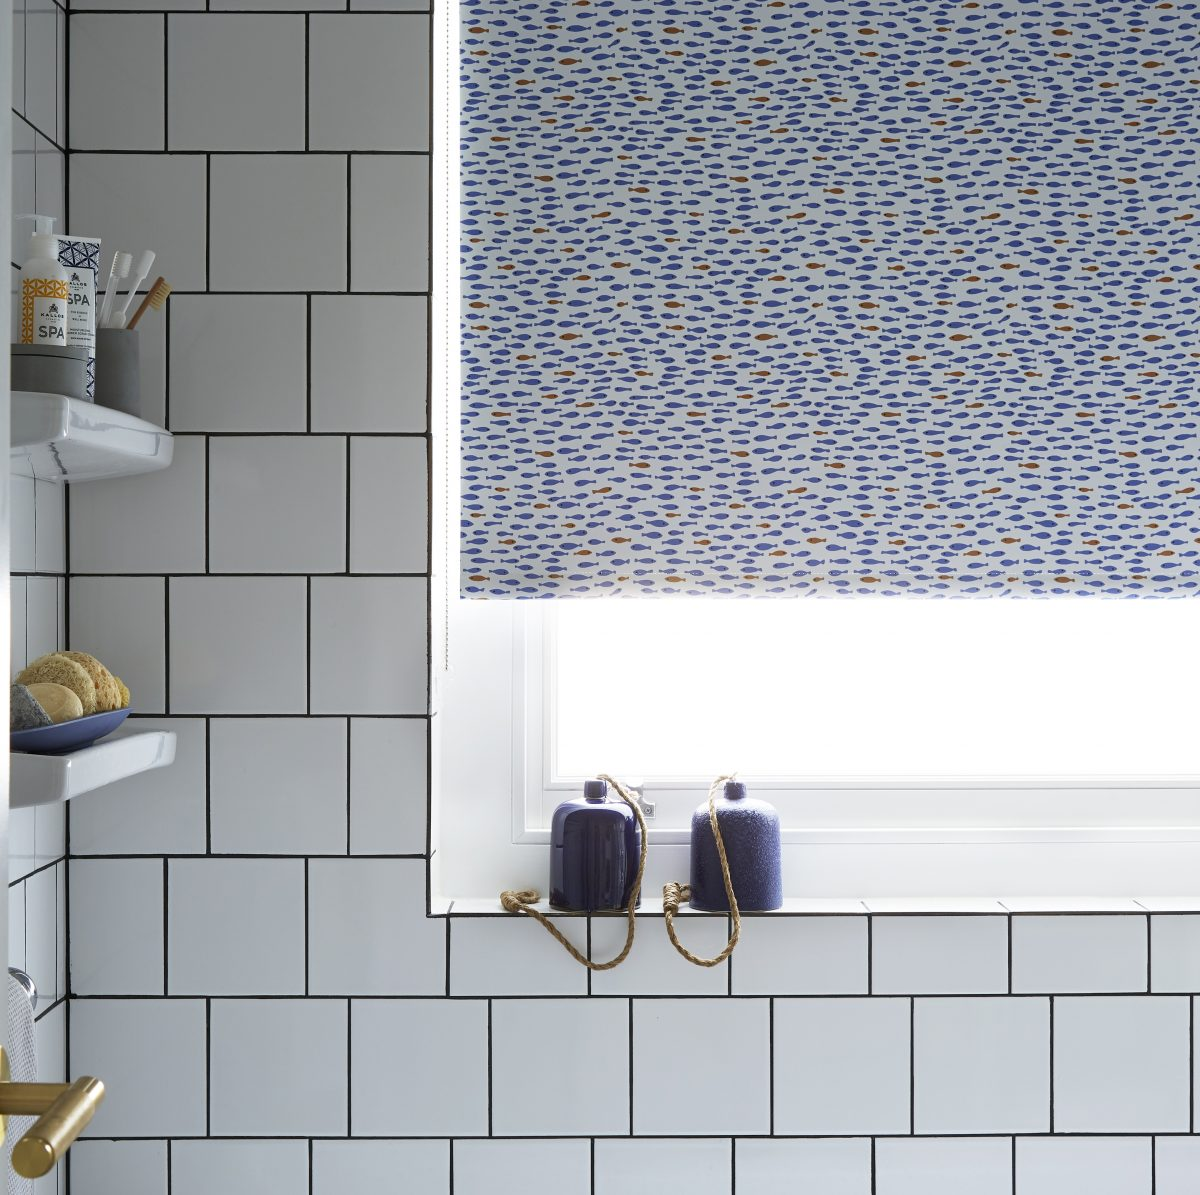 Kitchen blinds and Bathroom blinds: Our New Waterproof Collection